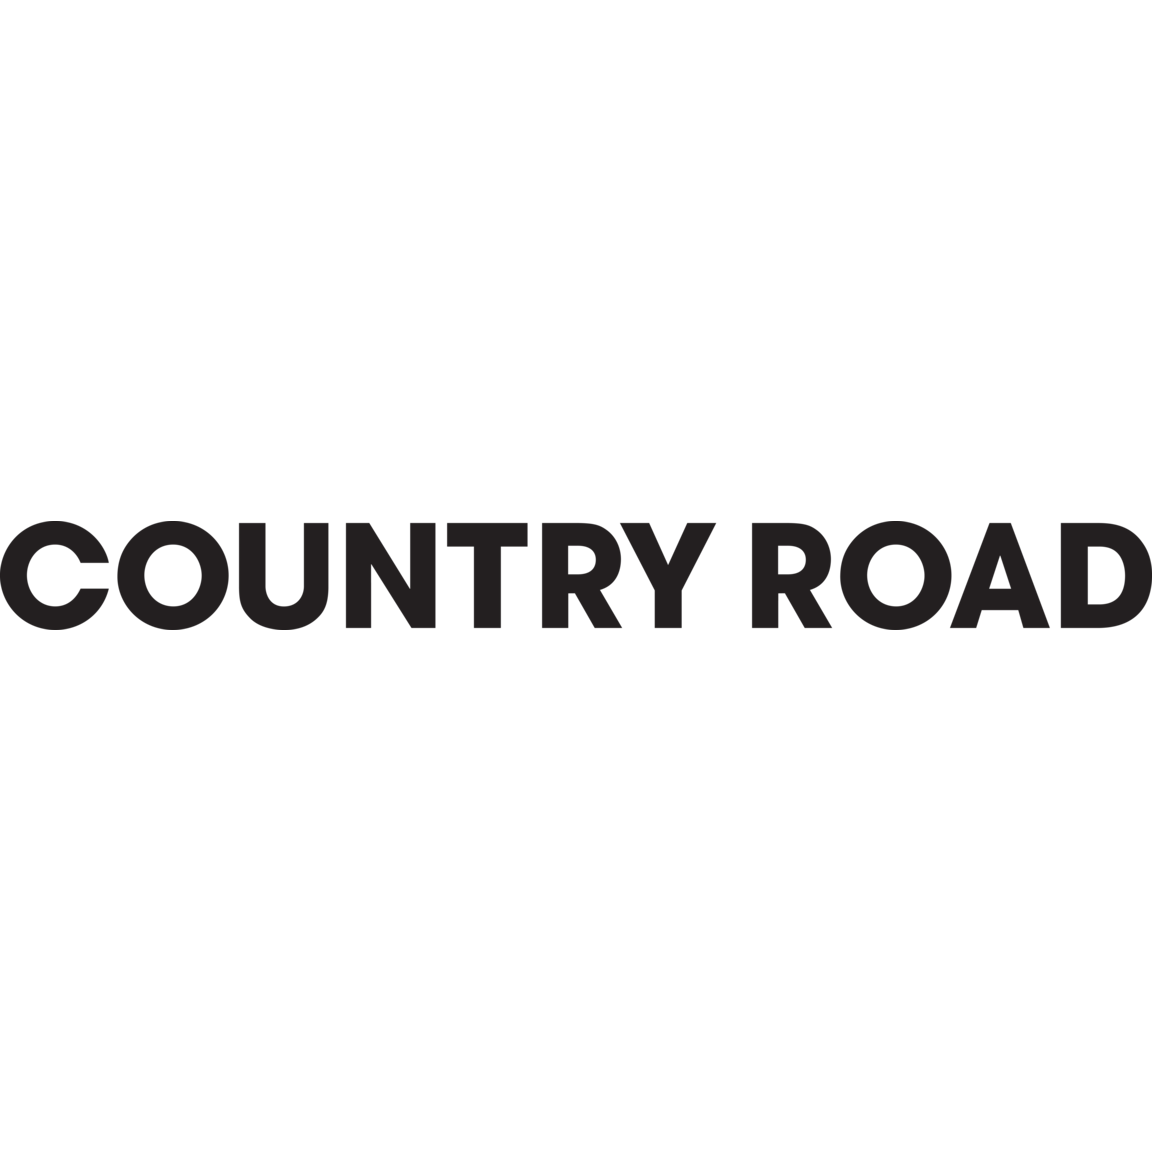 Country road png. At westfield carindale